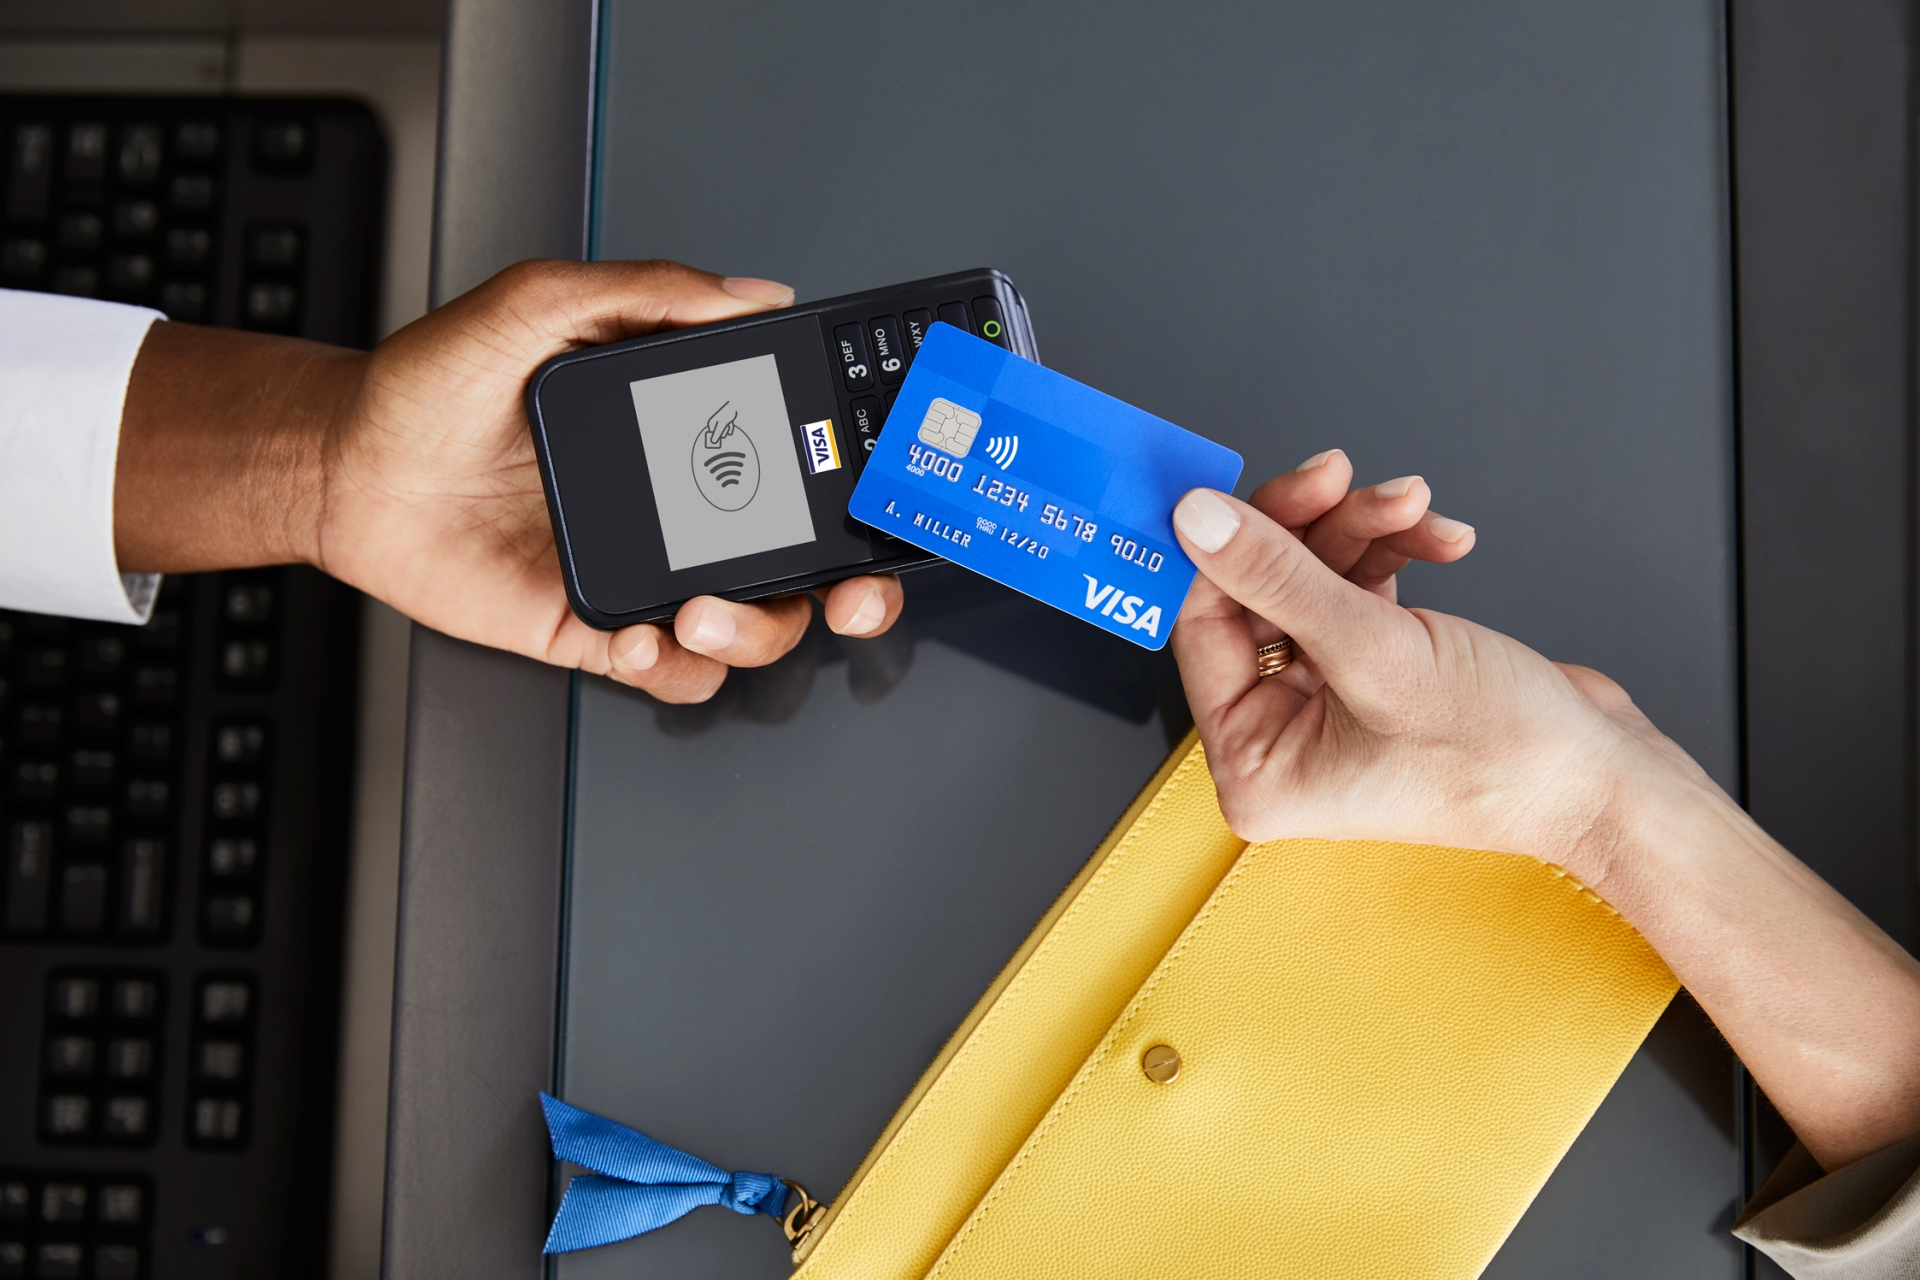 visa contactless payments set record growth as vietnamese embrace cashless payments